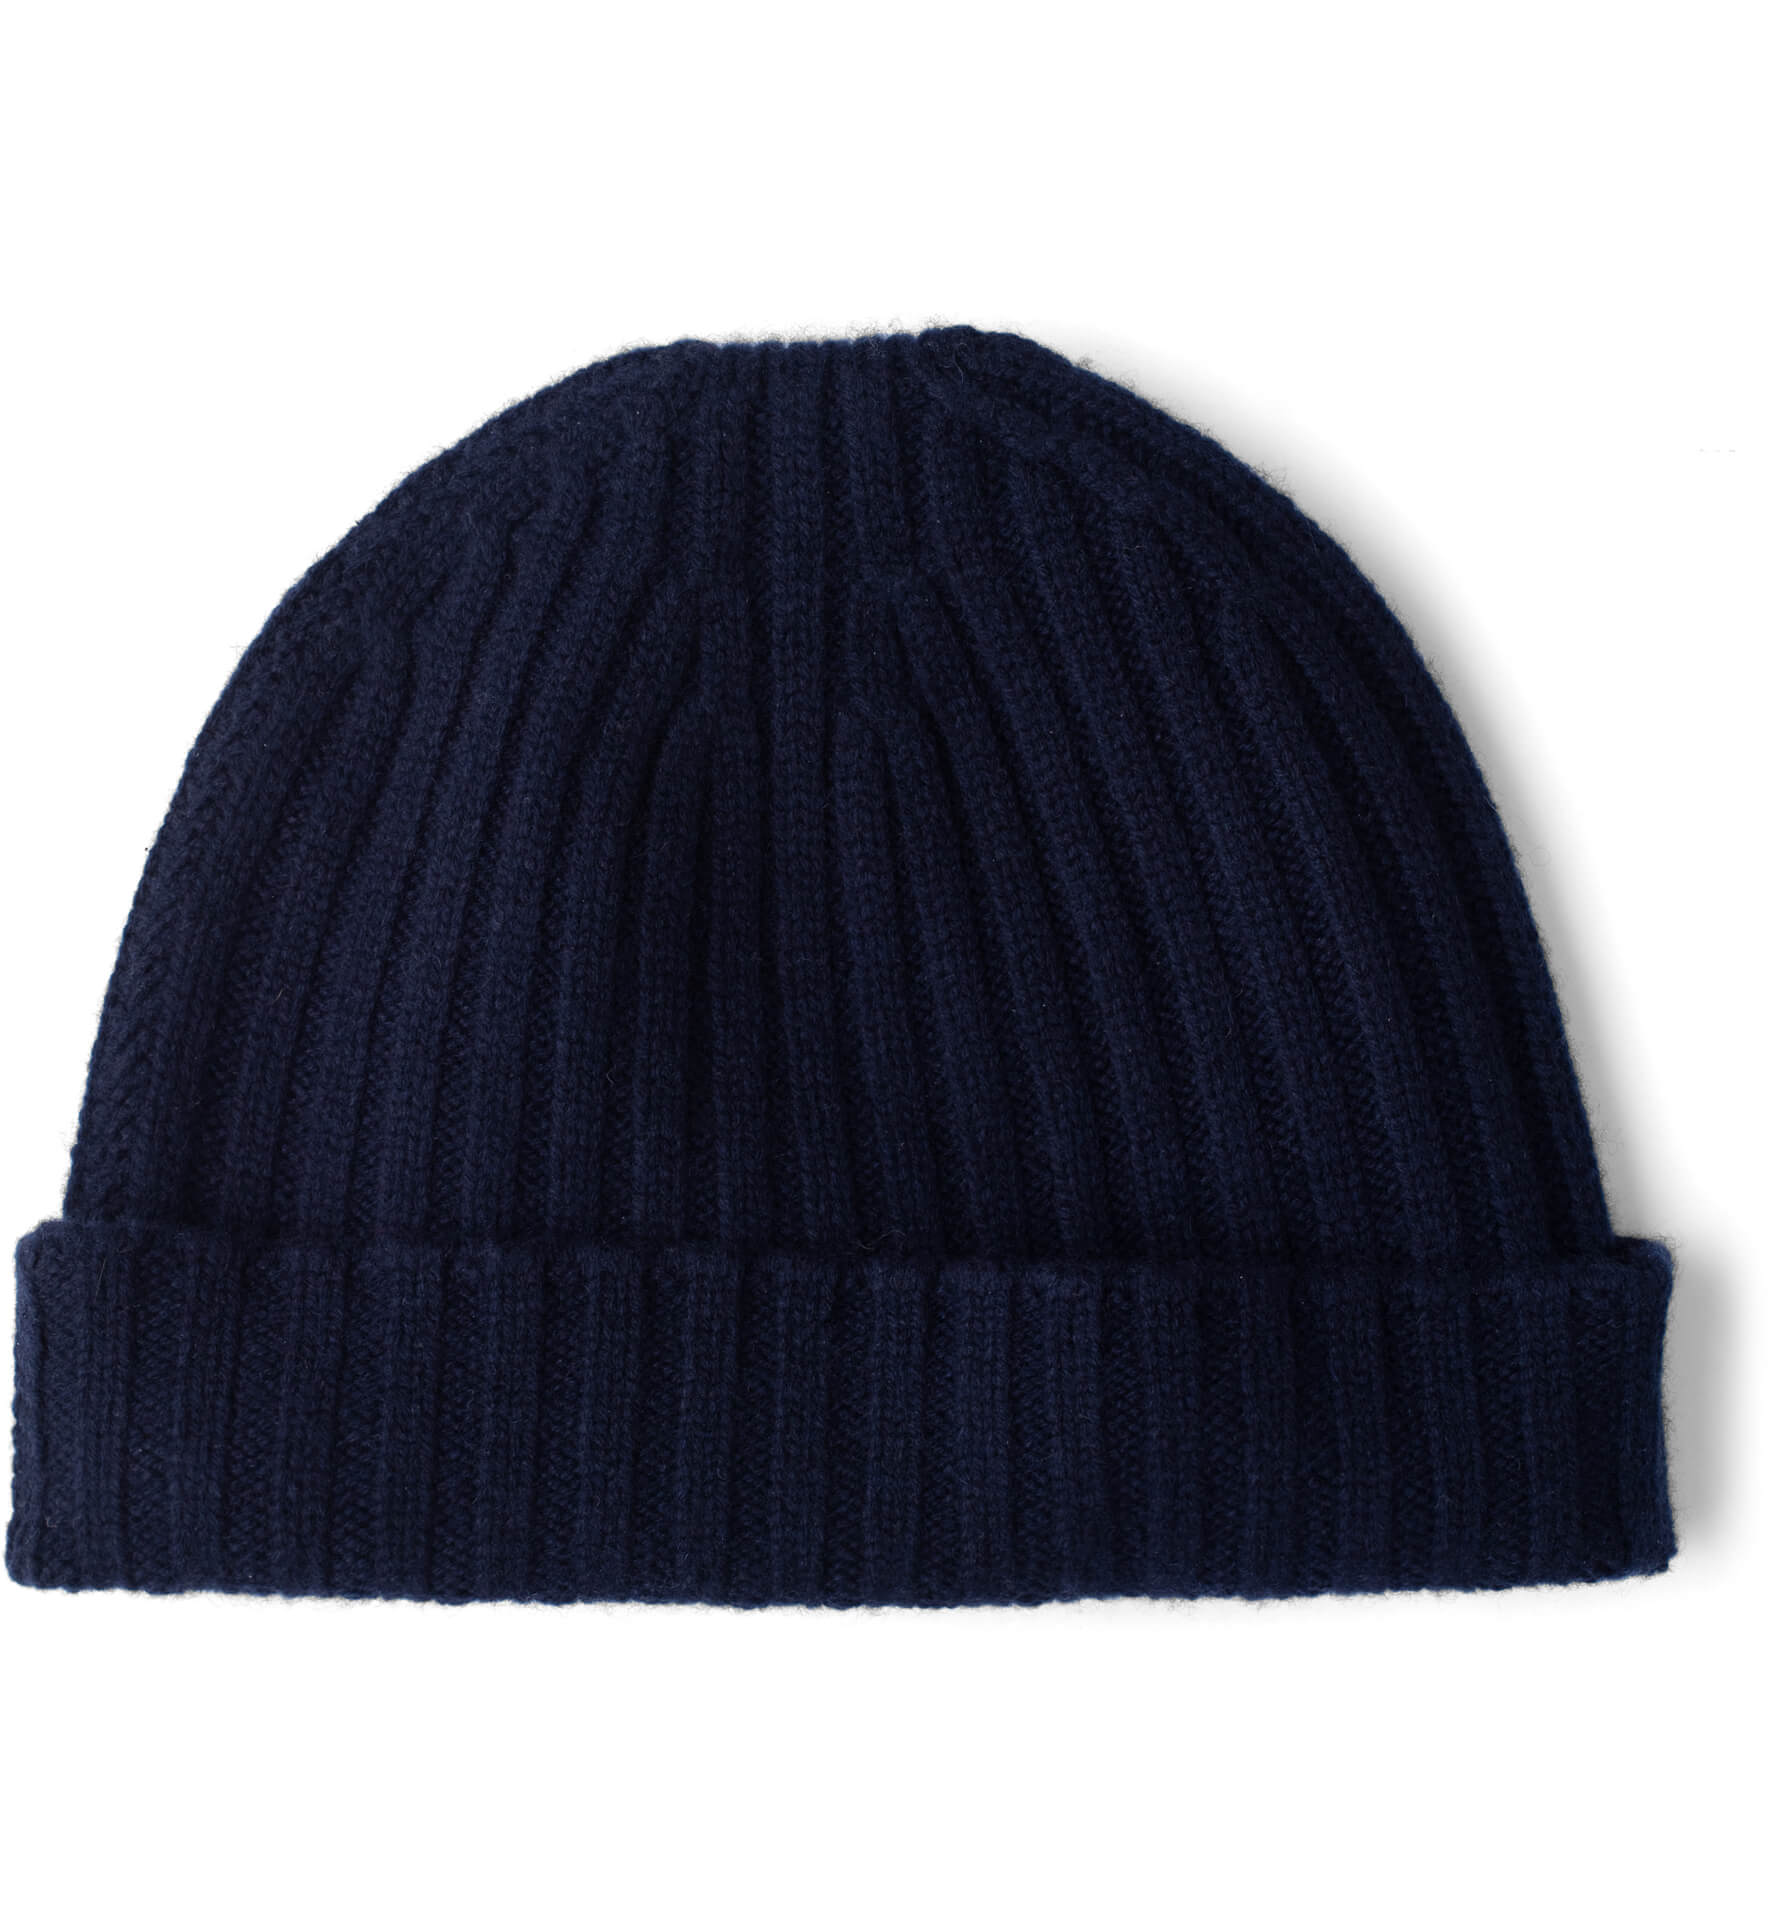 Zoom Image of Navy Cashmere Beanie